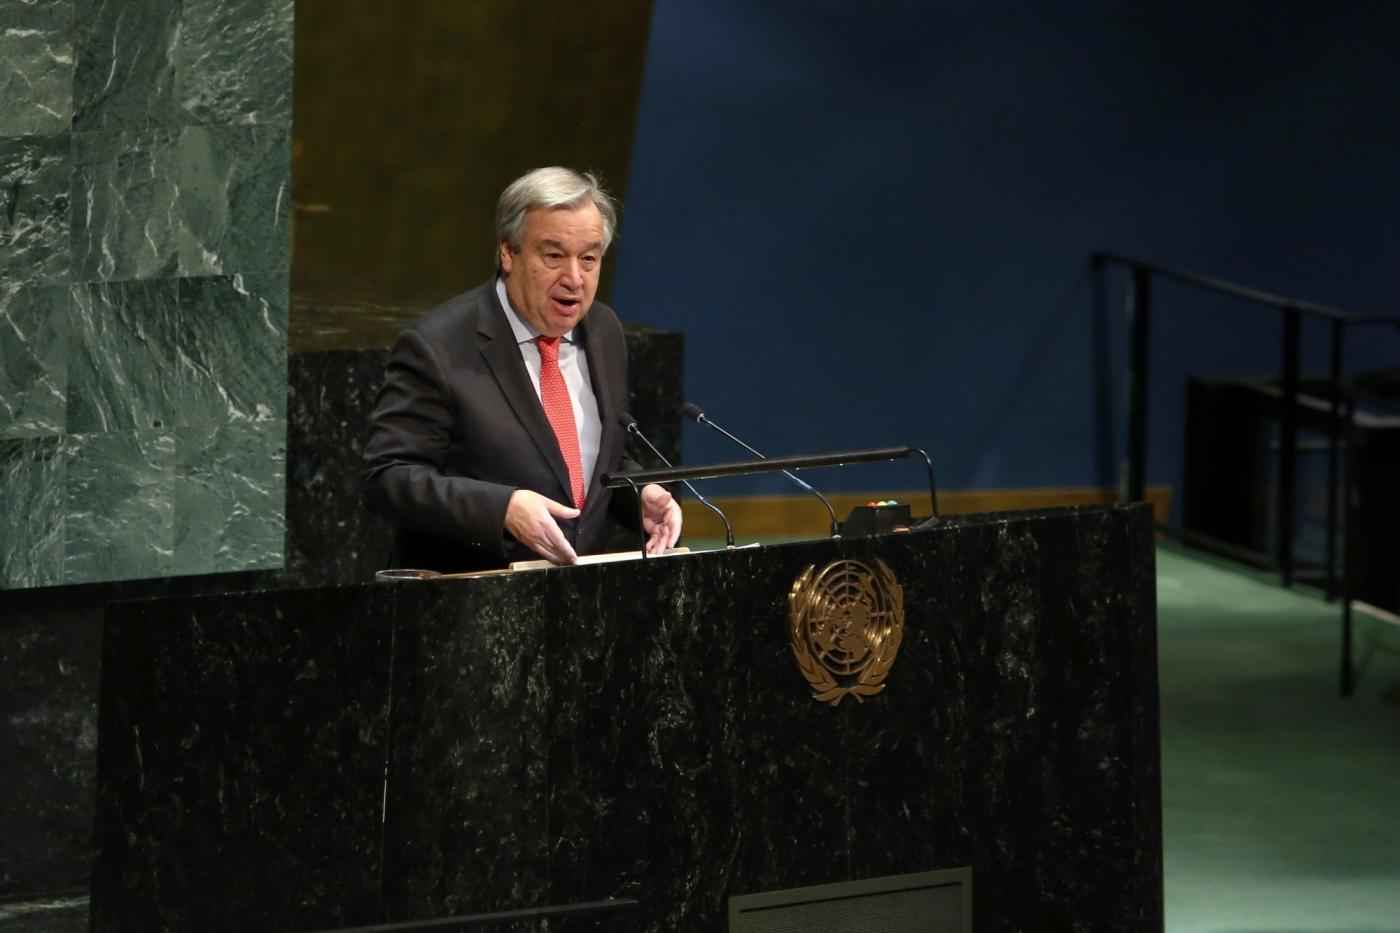 "UNITED NATIONS, March 11, 2019 (Xinhua) -- United Nations Secretary-General Antonio Guterres addresses the opening of the 63rd Session of the Commission on the Status of Women (CSW63), at the UN headquarters in New York, March 11, 2019. United Nations Secretary-General Antonio Guterres on Monday warned that there is a ""pushback"" on women's rights globally. (Xinhua/Li Muzi/IANS) by ."